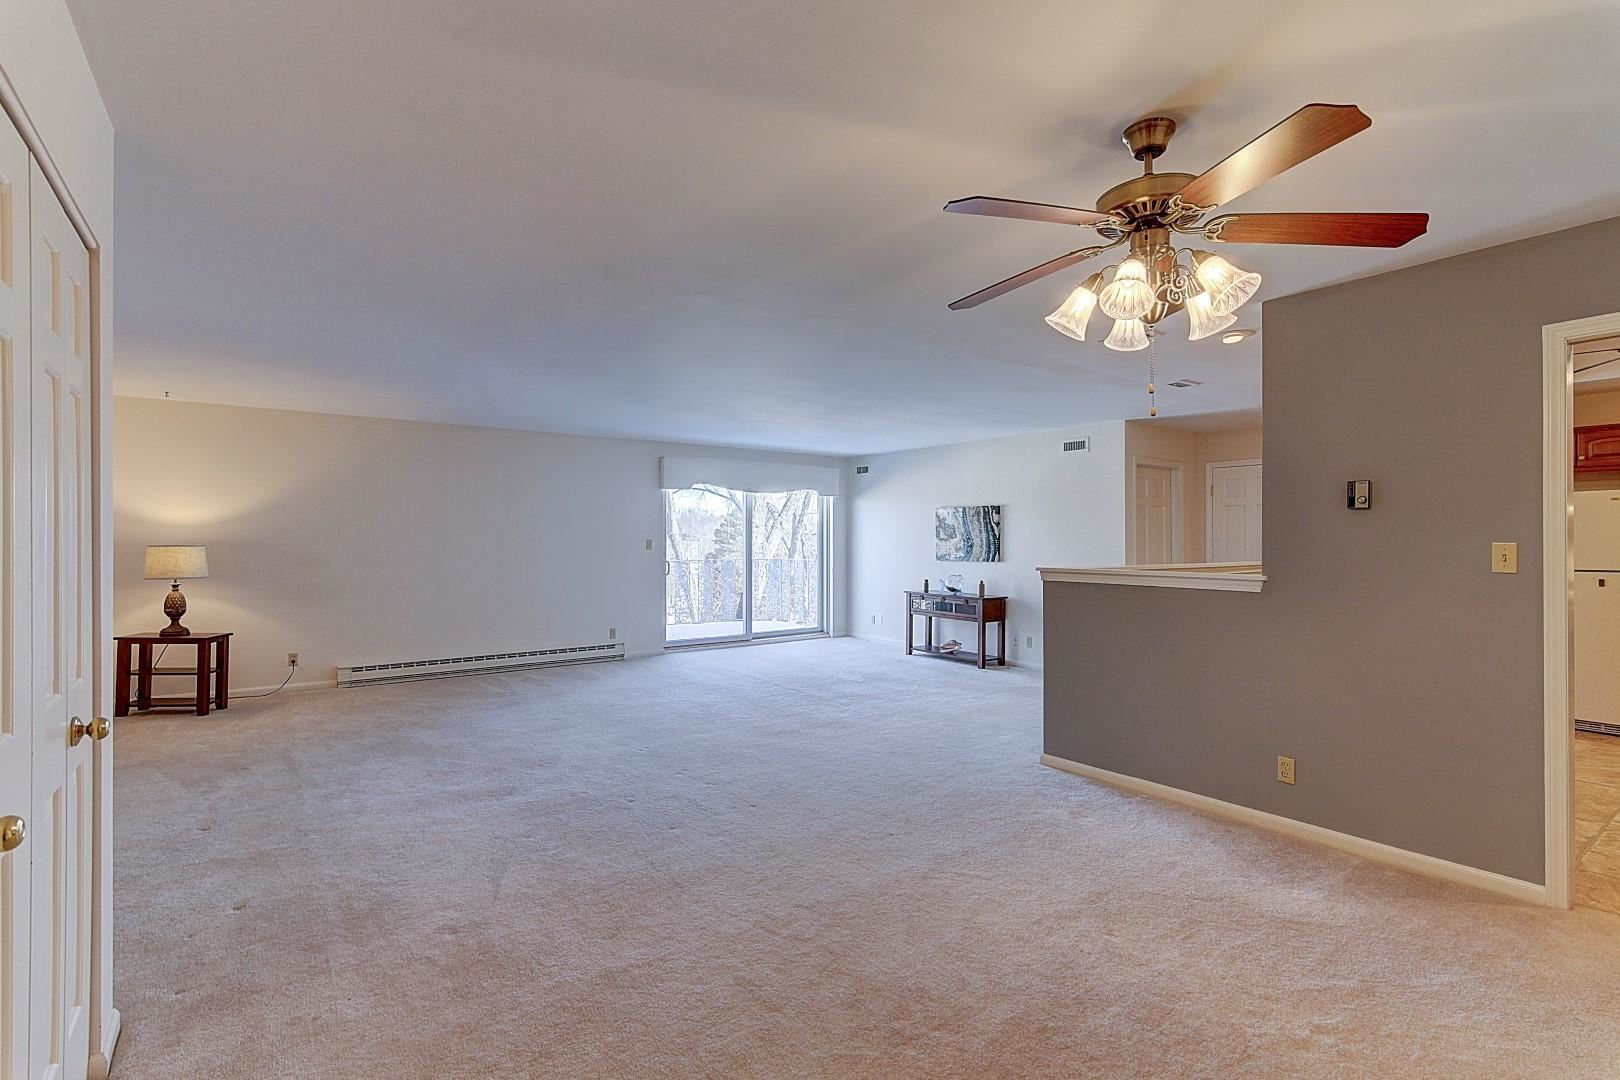 13335 Watertown Plank Rd #315, Elm Grove, WI 53122 - #: 1677811